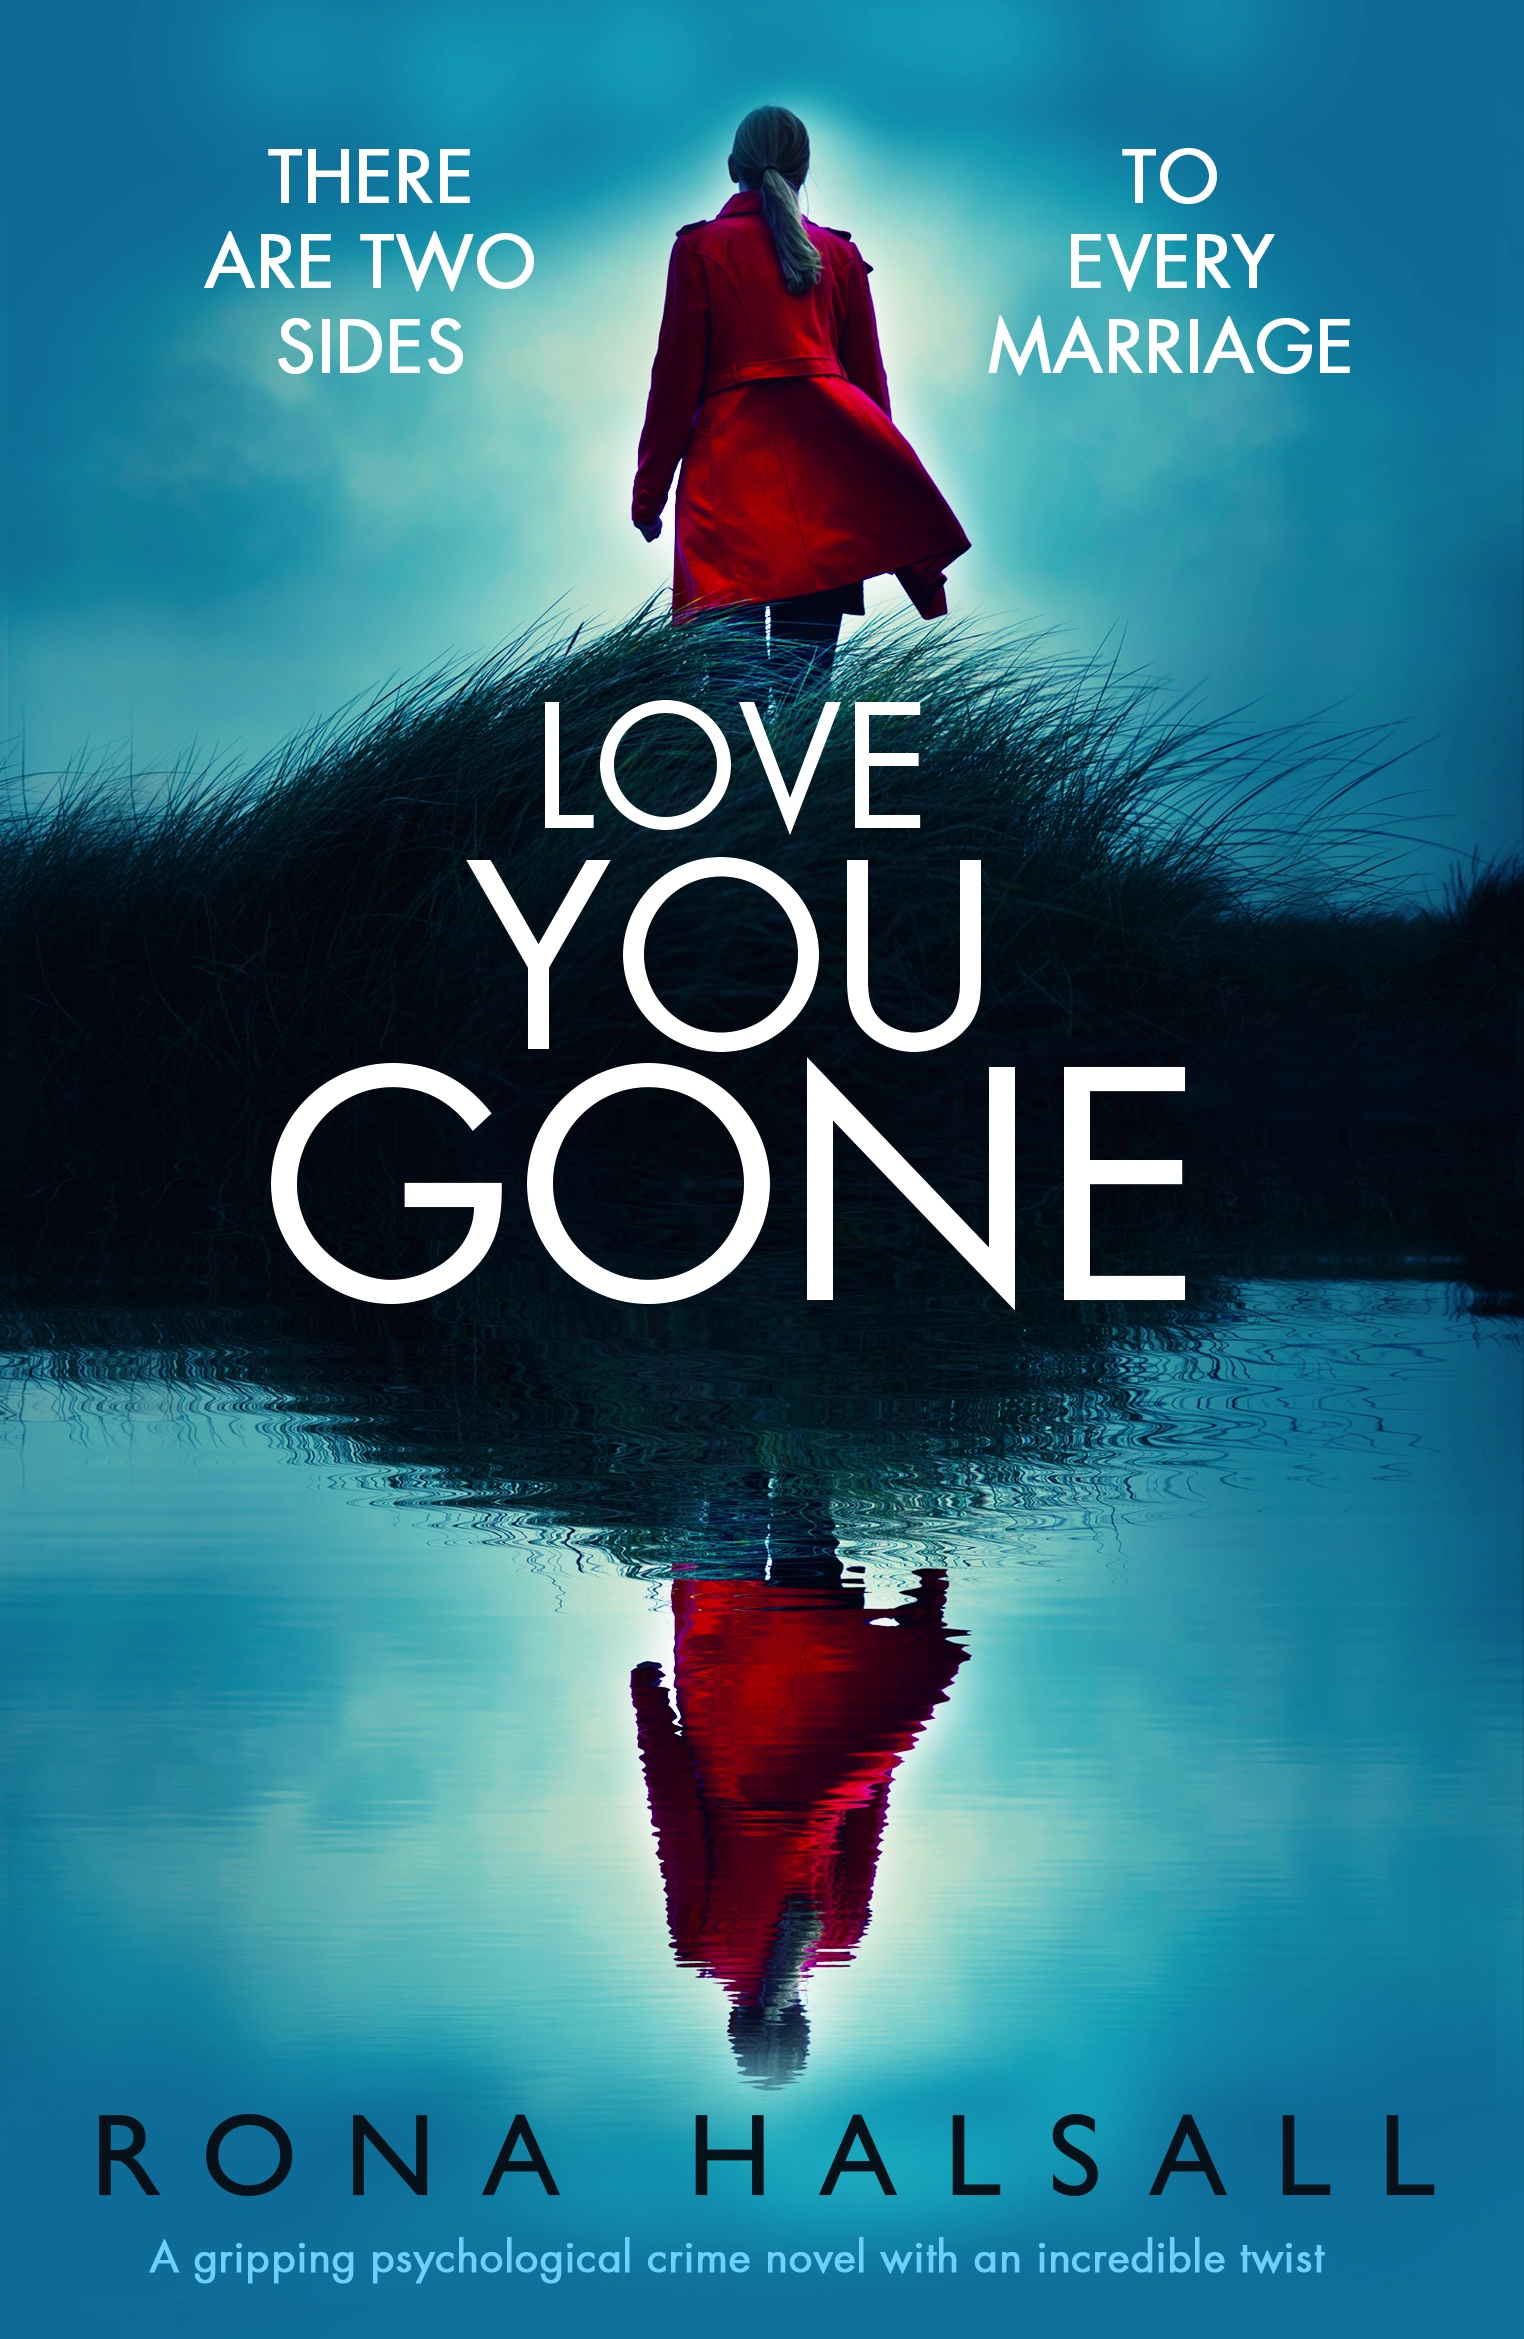 #BookReview of Love You Gone by Rona Halsall @RonaHalsallAuth @nholten40 @bookouture #netgalley #loveyougone #OMG #OMFG